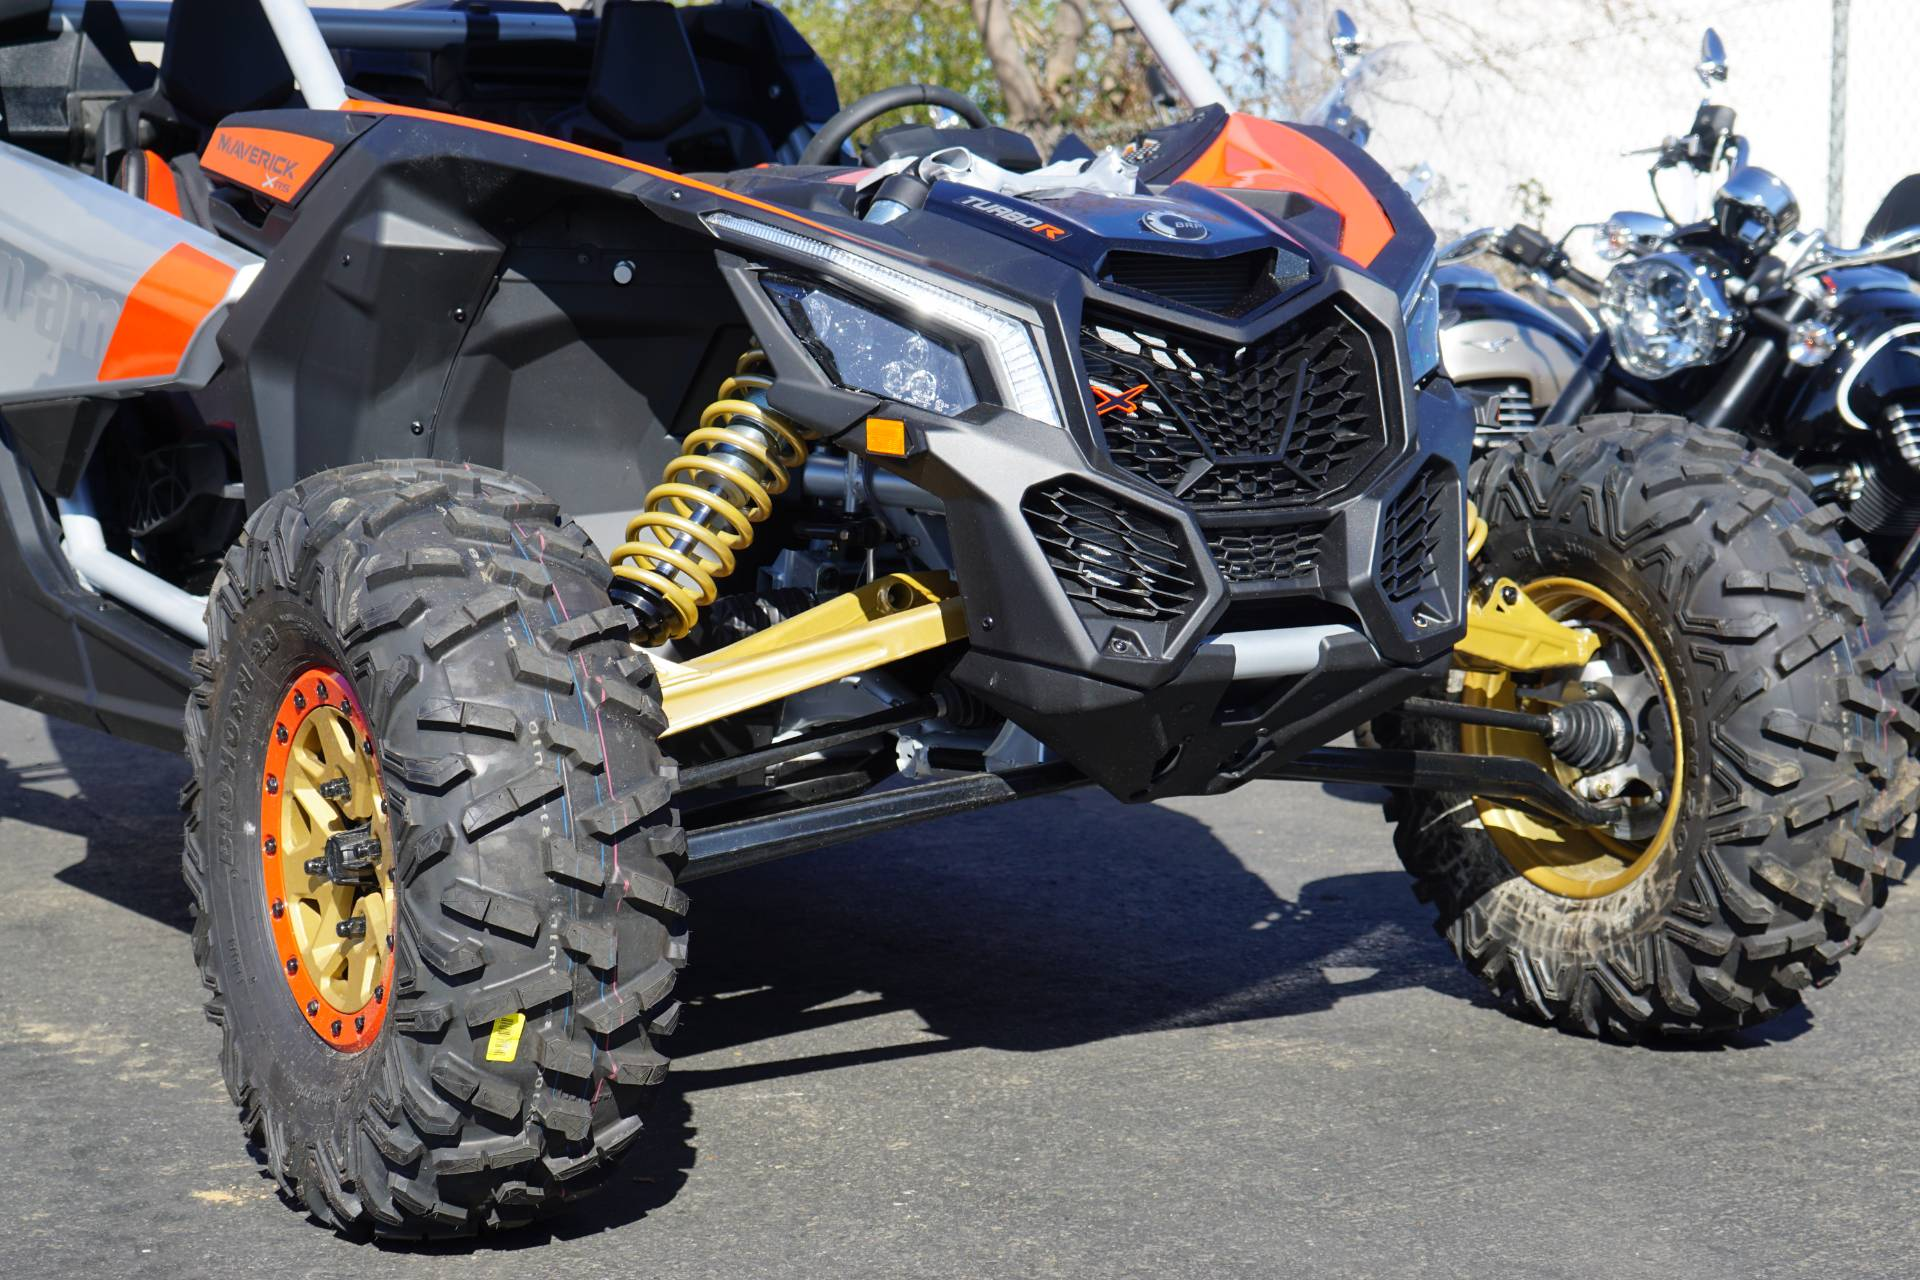 2019 Can-Am Maverick X3 X rs Turbo R in Elk Grove, California - Photo 2